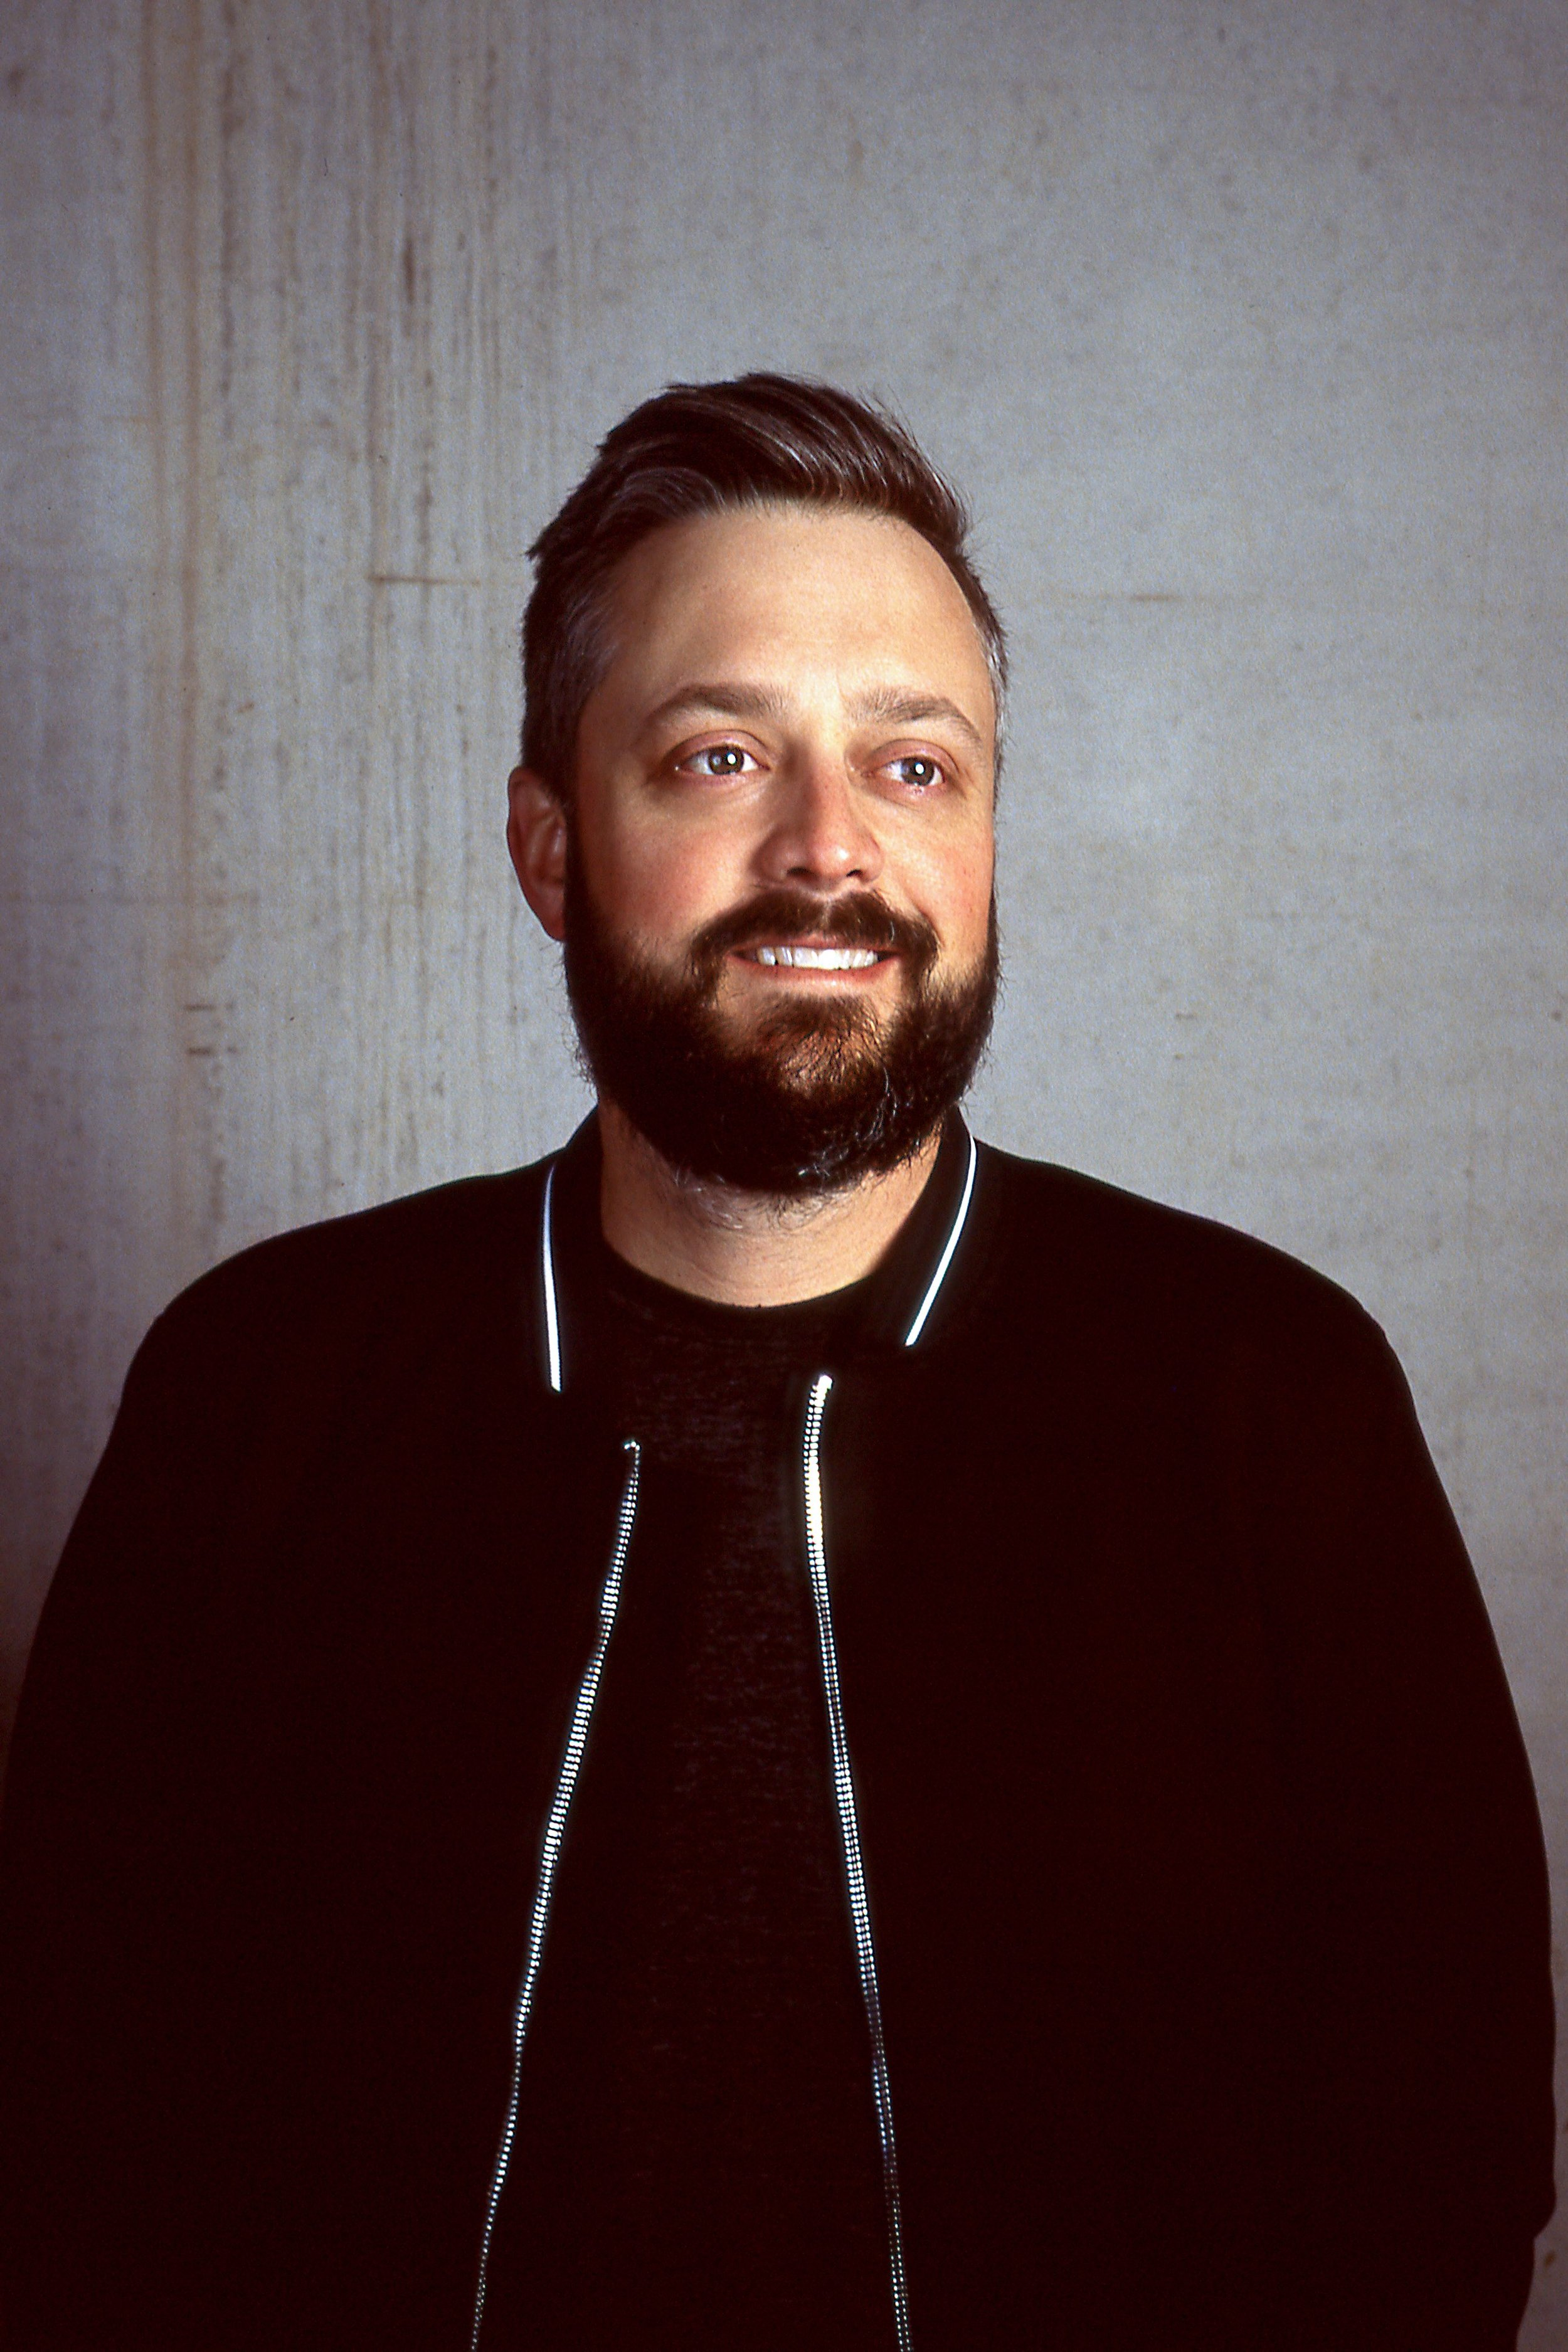 Comedian Nate Bargatze / Matt Pittman / Huntsville, AL / Kodak Ektachrome / Leica M7 / Paul C. Buff Lighting